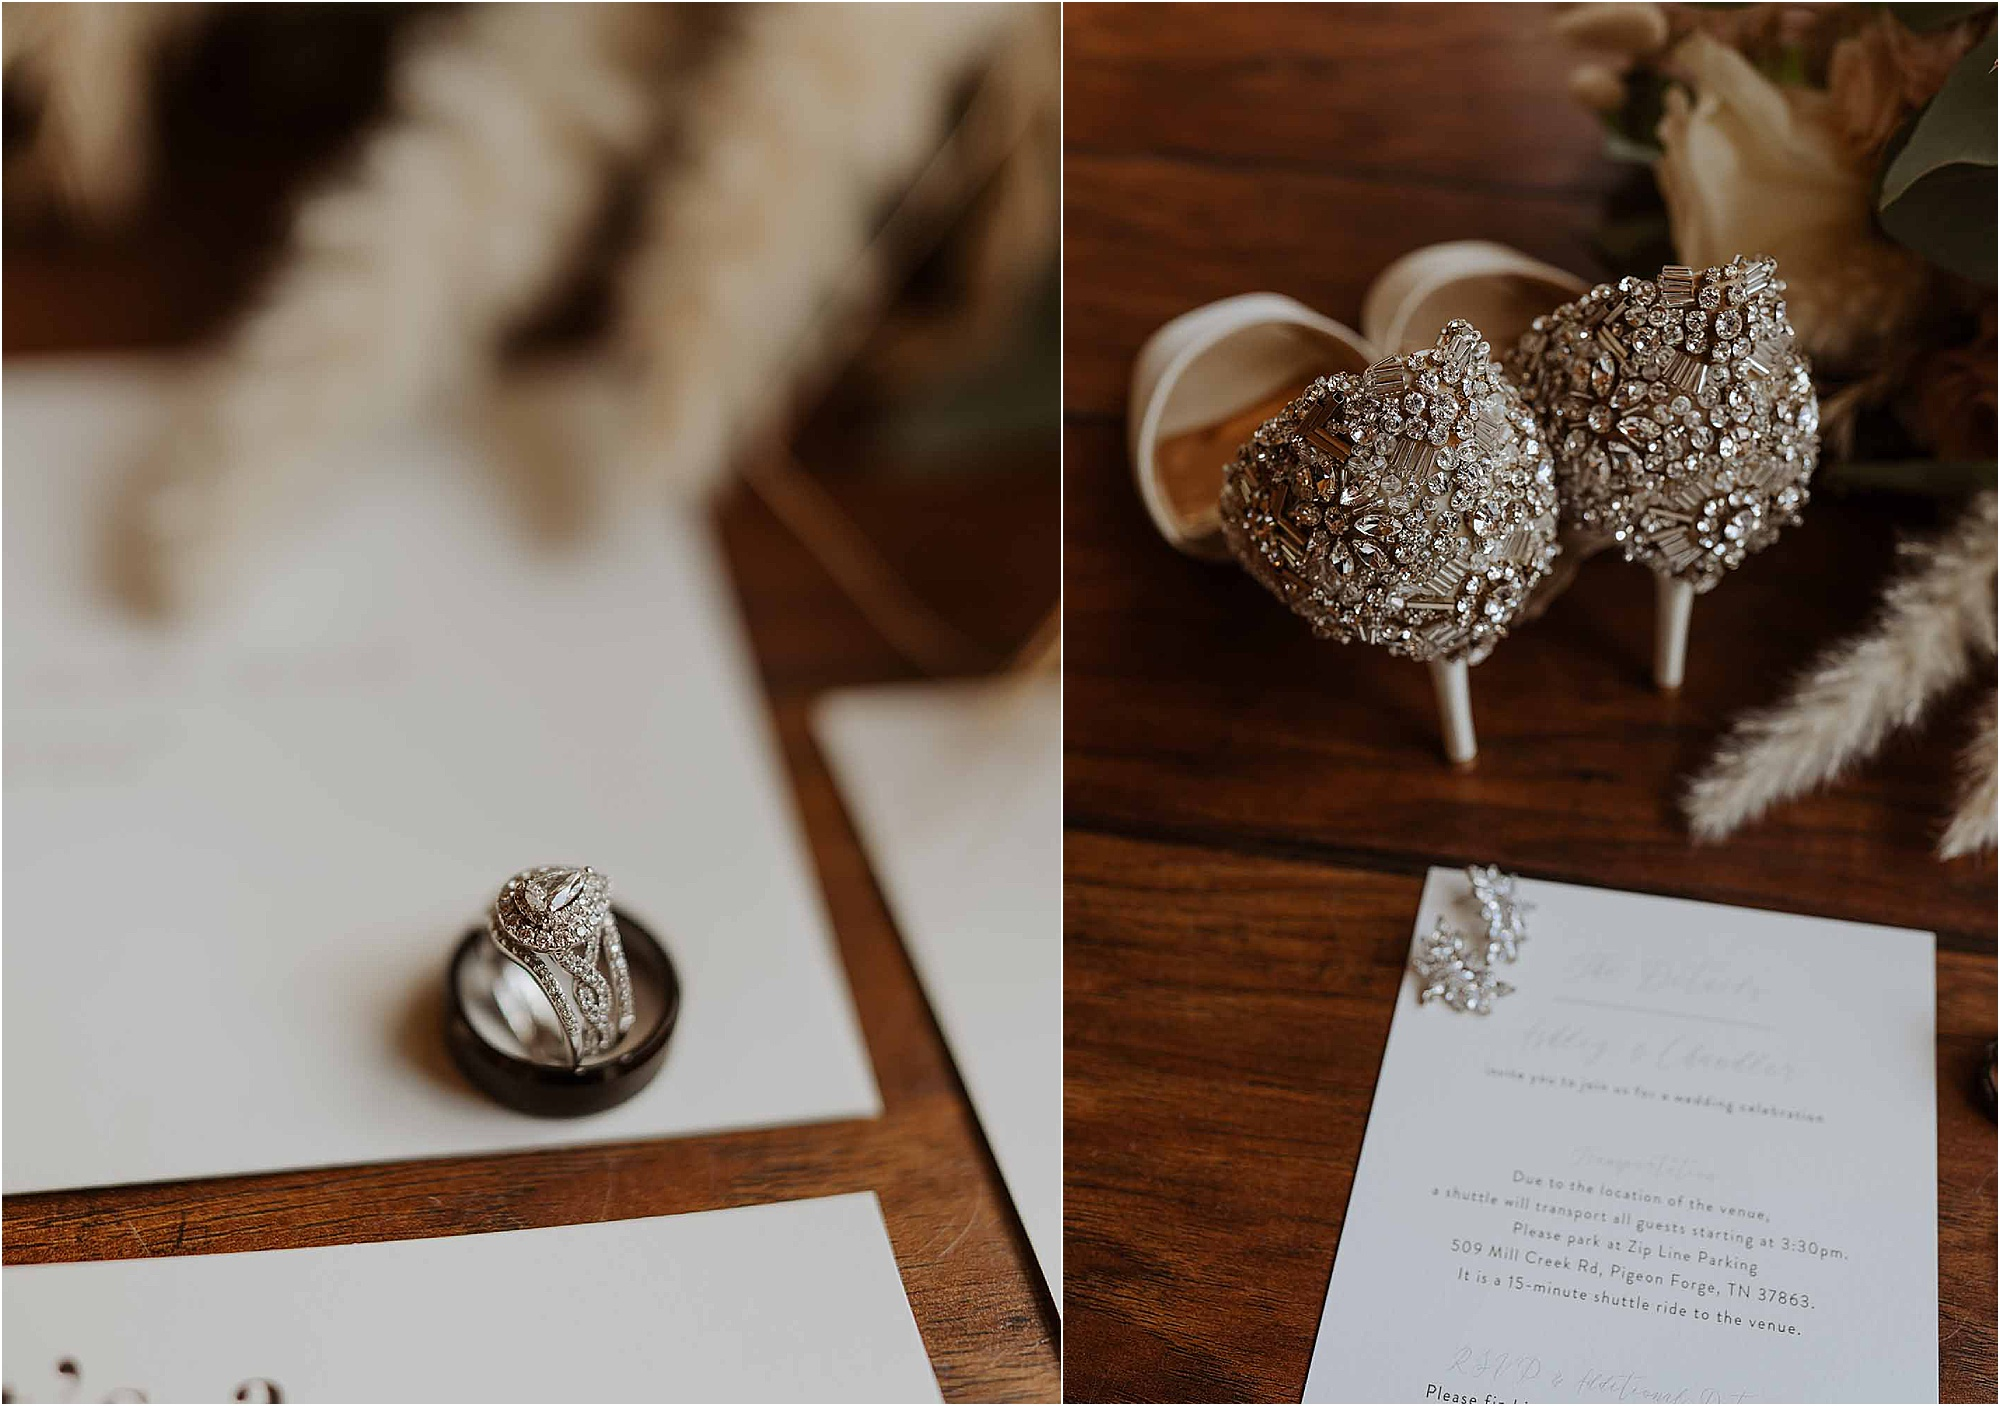 wedding ring and silver shoe wedding details